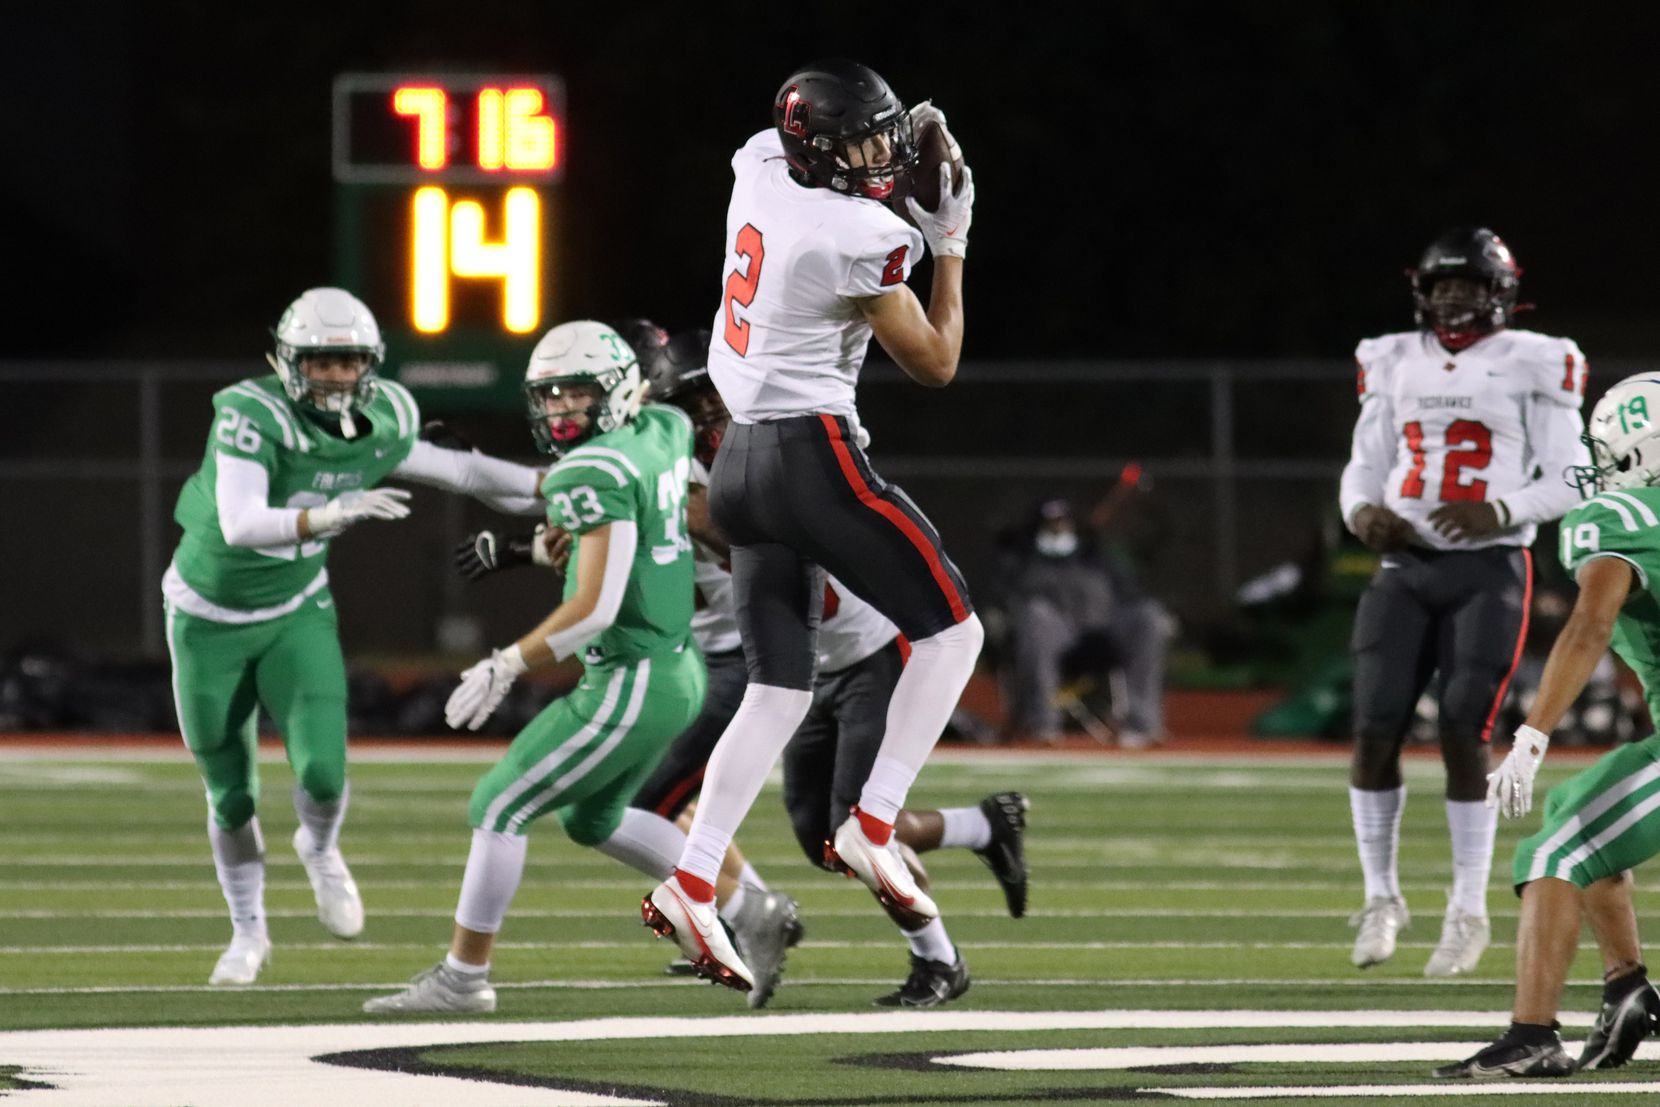 Frisco Liberty wide receiver Connor Hulstein (5) makes a catch during the first half against Lake Dallas at Falcon Stadium in Corinth, Texas Friday, October 23, 2020. (Elias Valverde II / Special Contributor)